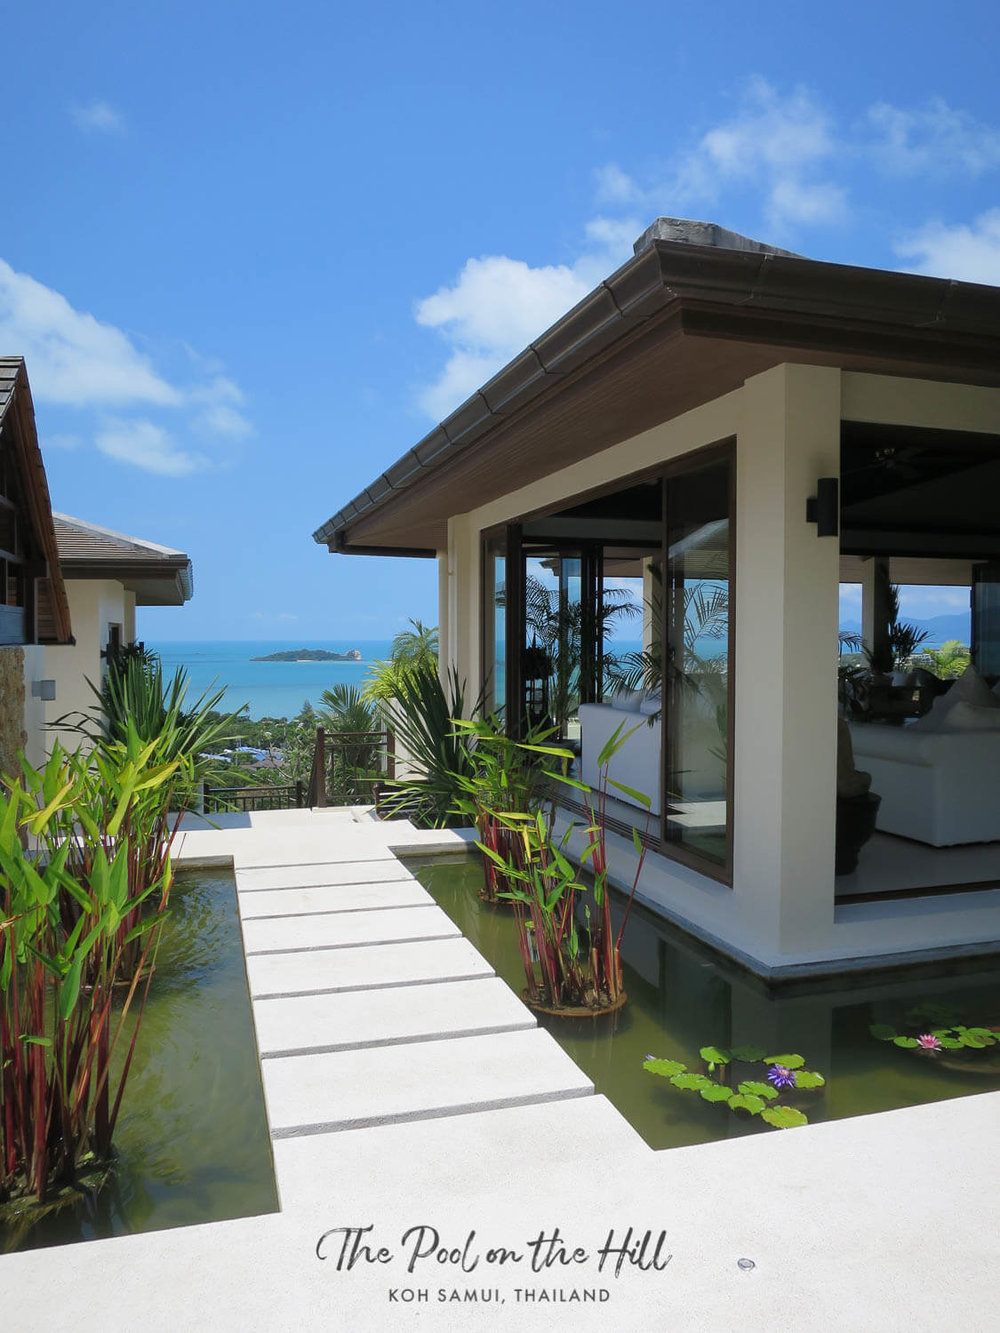 Villa in Thailand: Welcome to The Pool on the Hill, a family villa in Koh Samui, Thailand. The villa entrance features antique Chinese gates, a beautiful pond and ocean views | #kohsamui #thailand #samui #travel #privatevilla